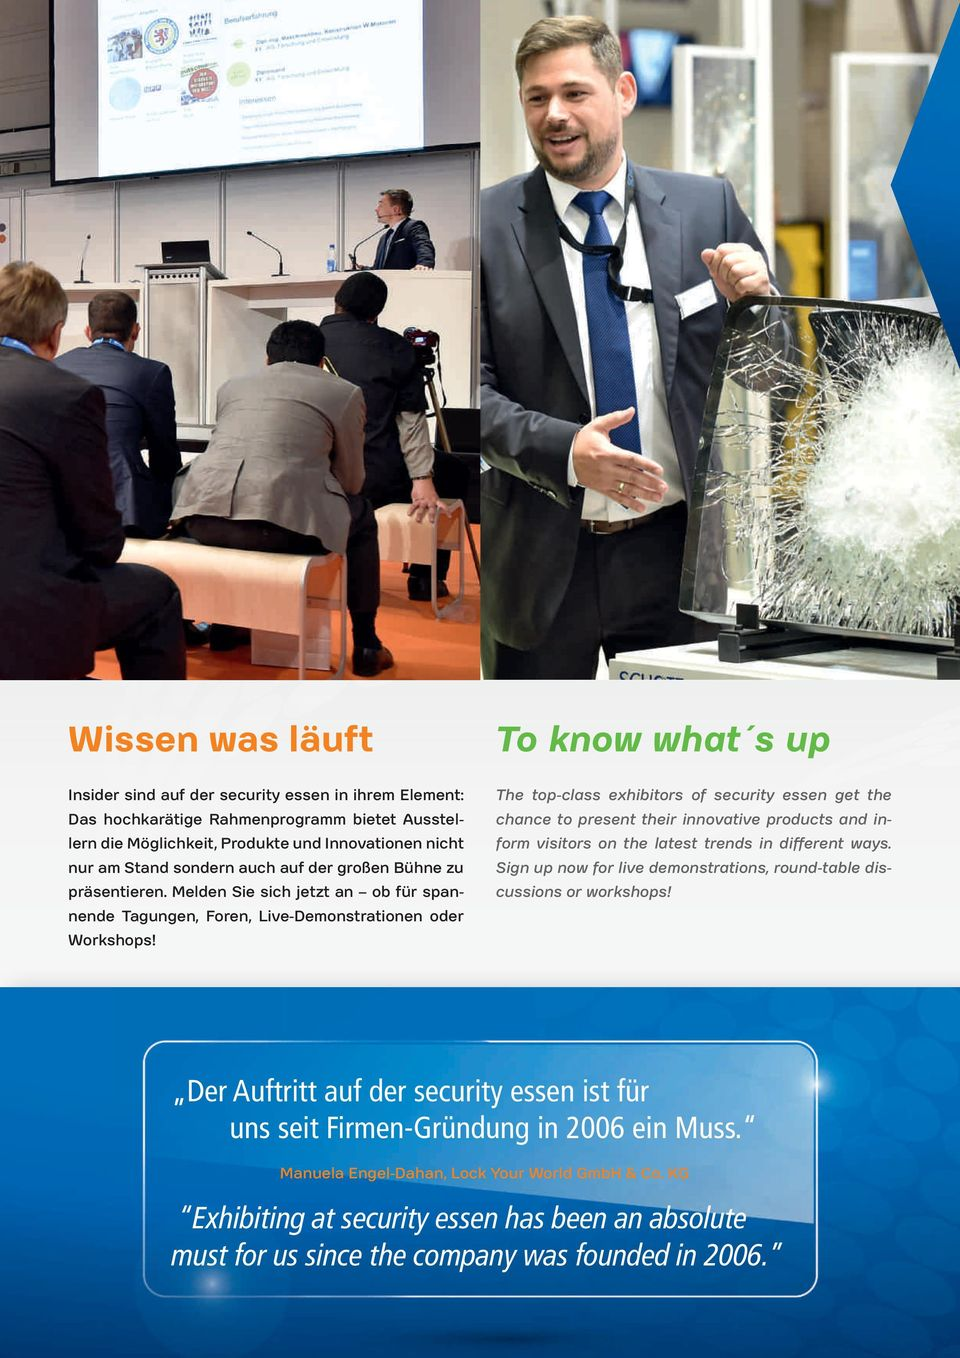 To know what s up The top-class exhibitors of security essen get the chance to present their innovative products and inform visitors on the latest trends in different ways.